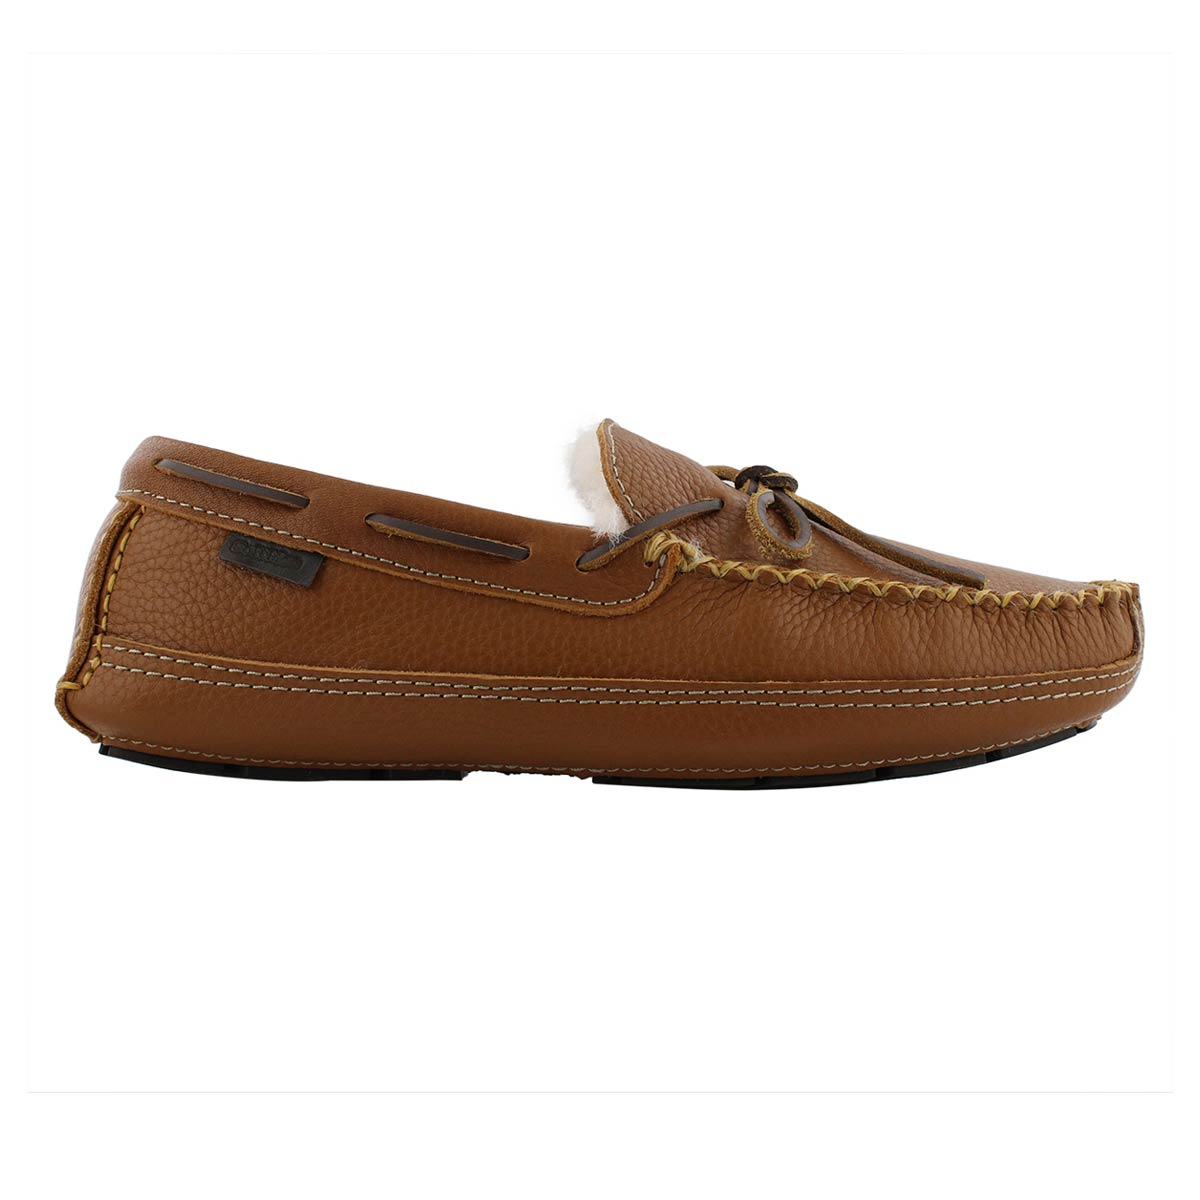 Mns Doyle tan leather moccasin